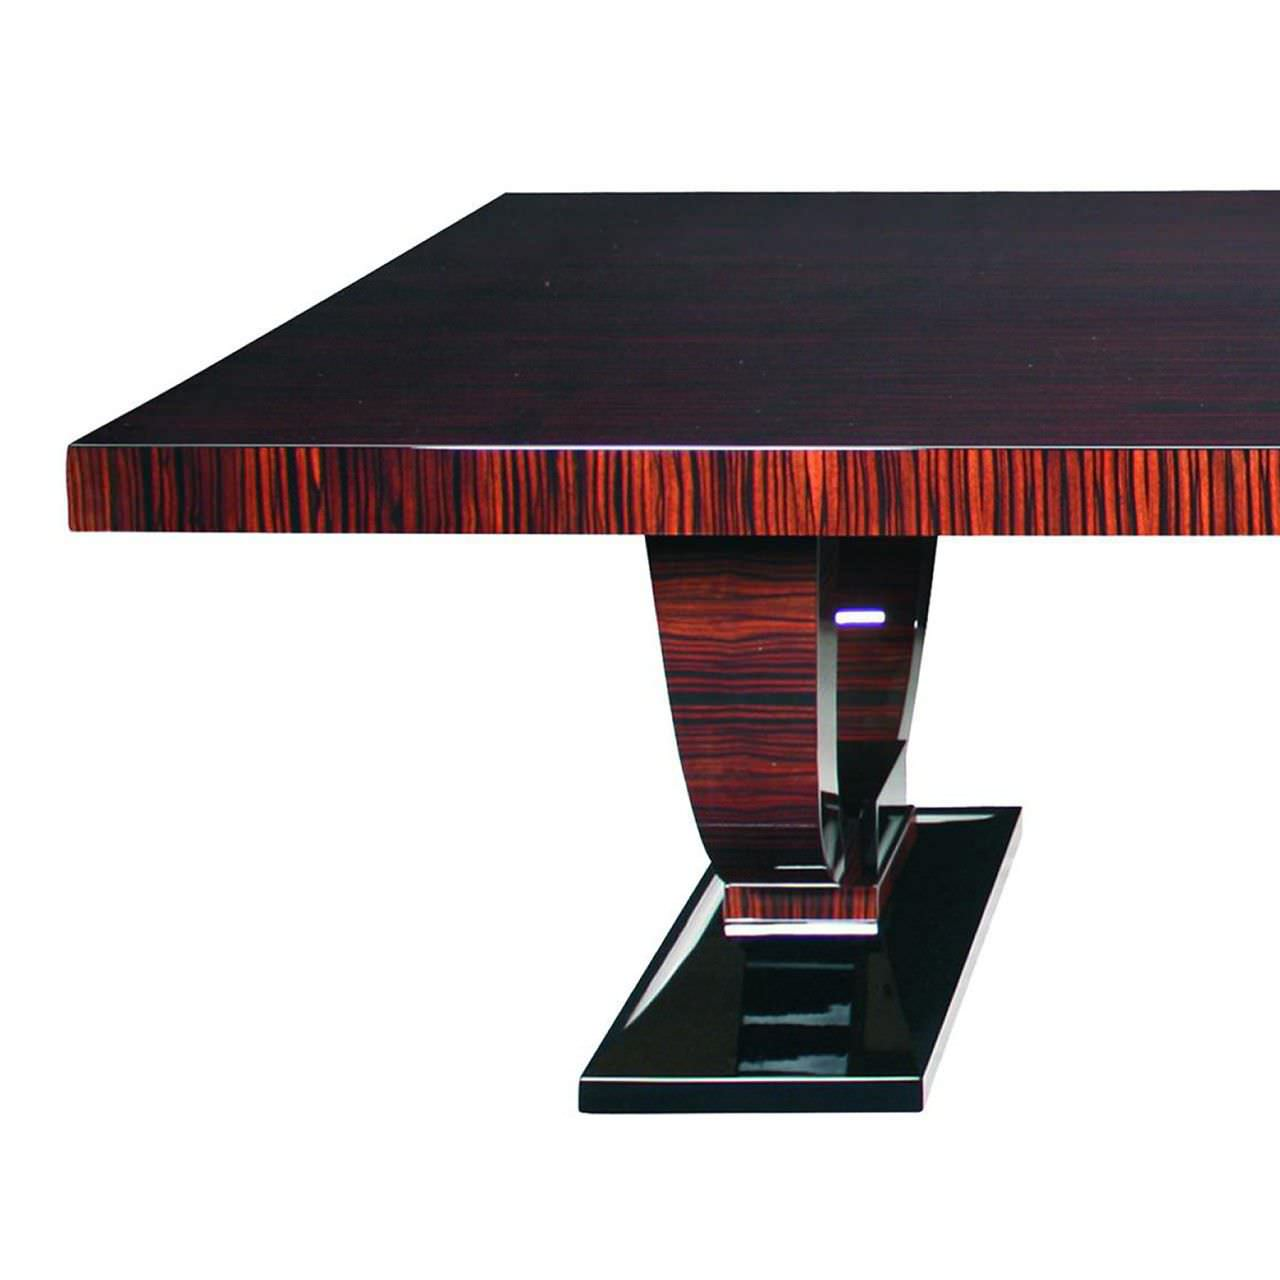 Tavolo Pranzo Art Deco art deco conference table - t033 - cygal art deco gmbh & co